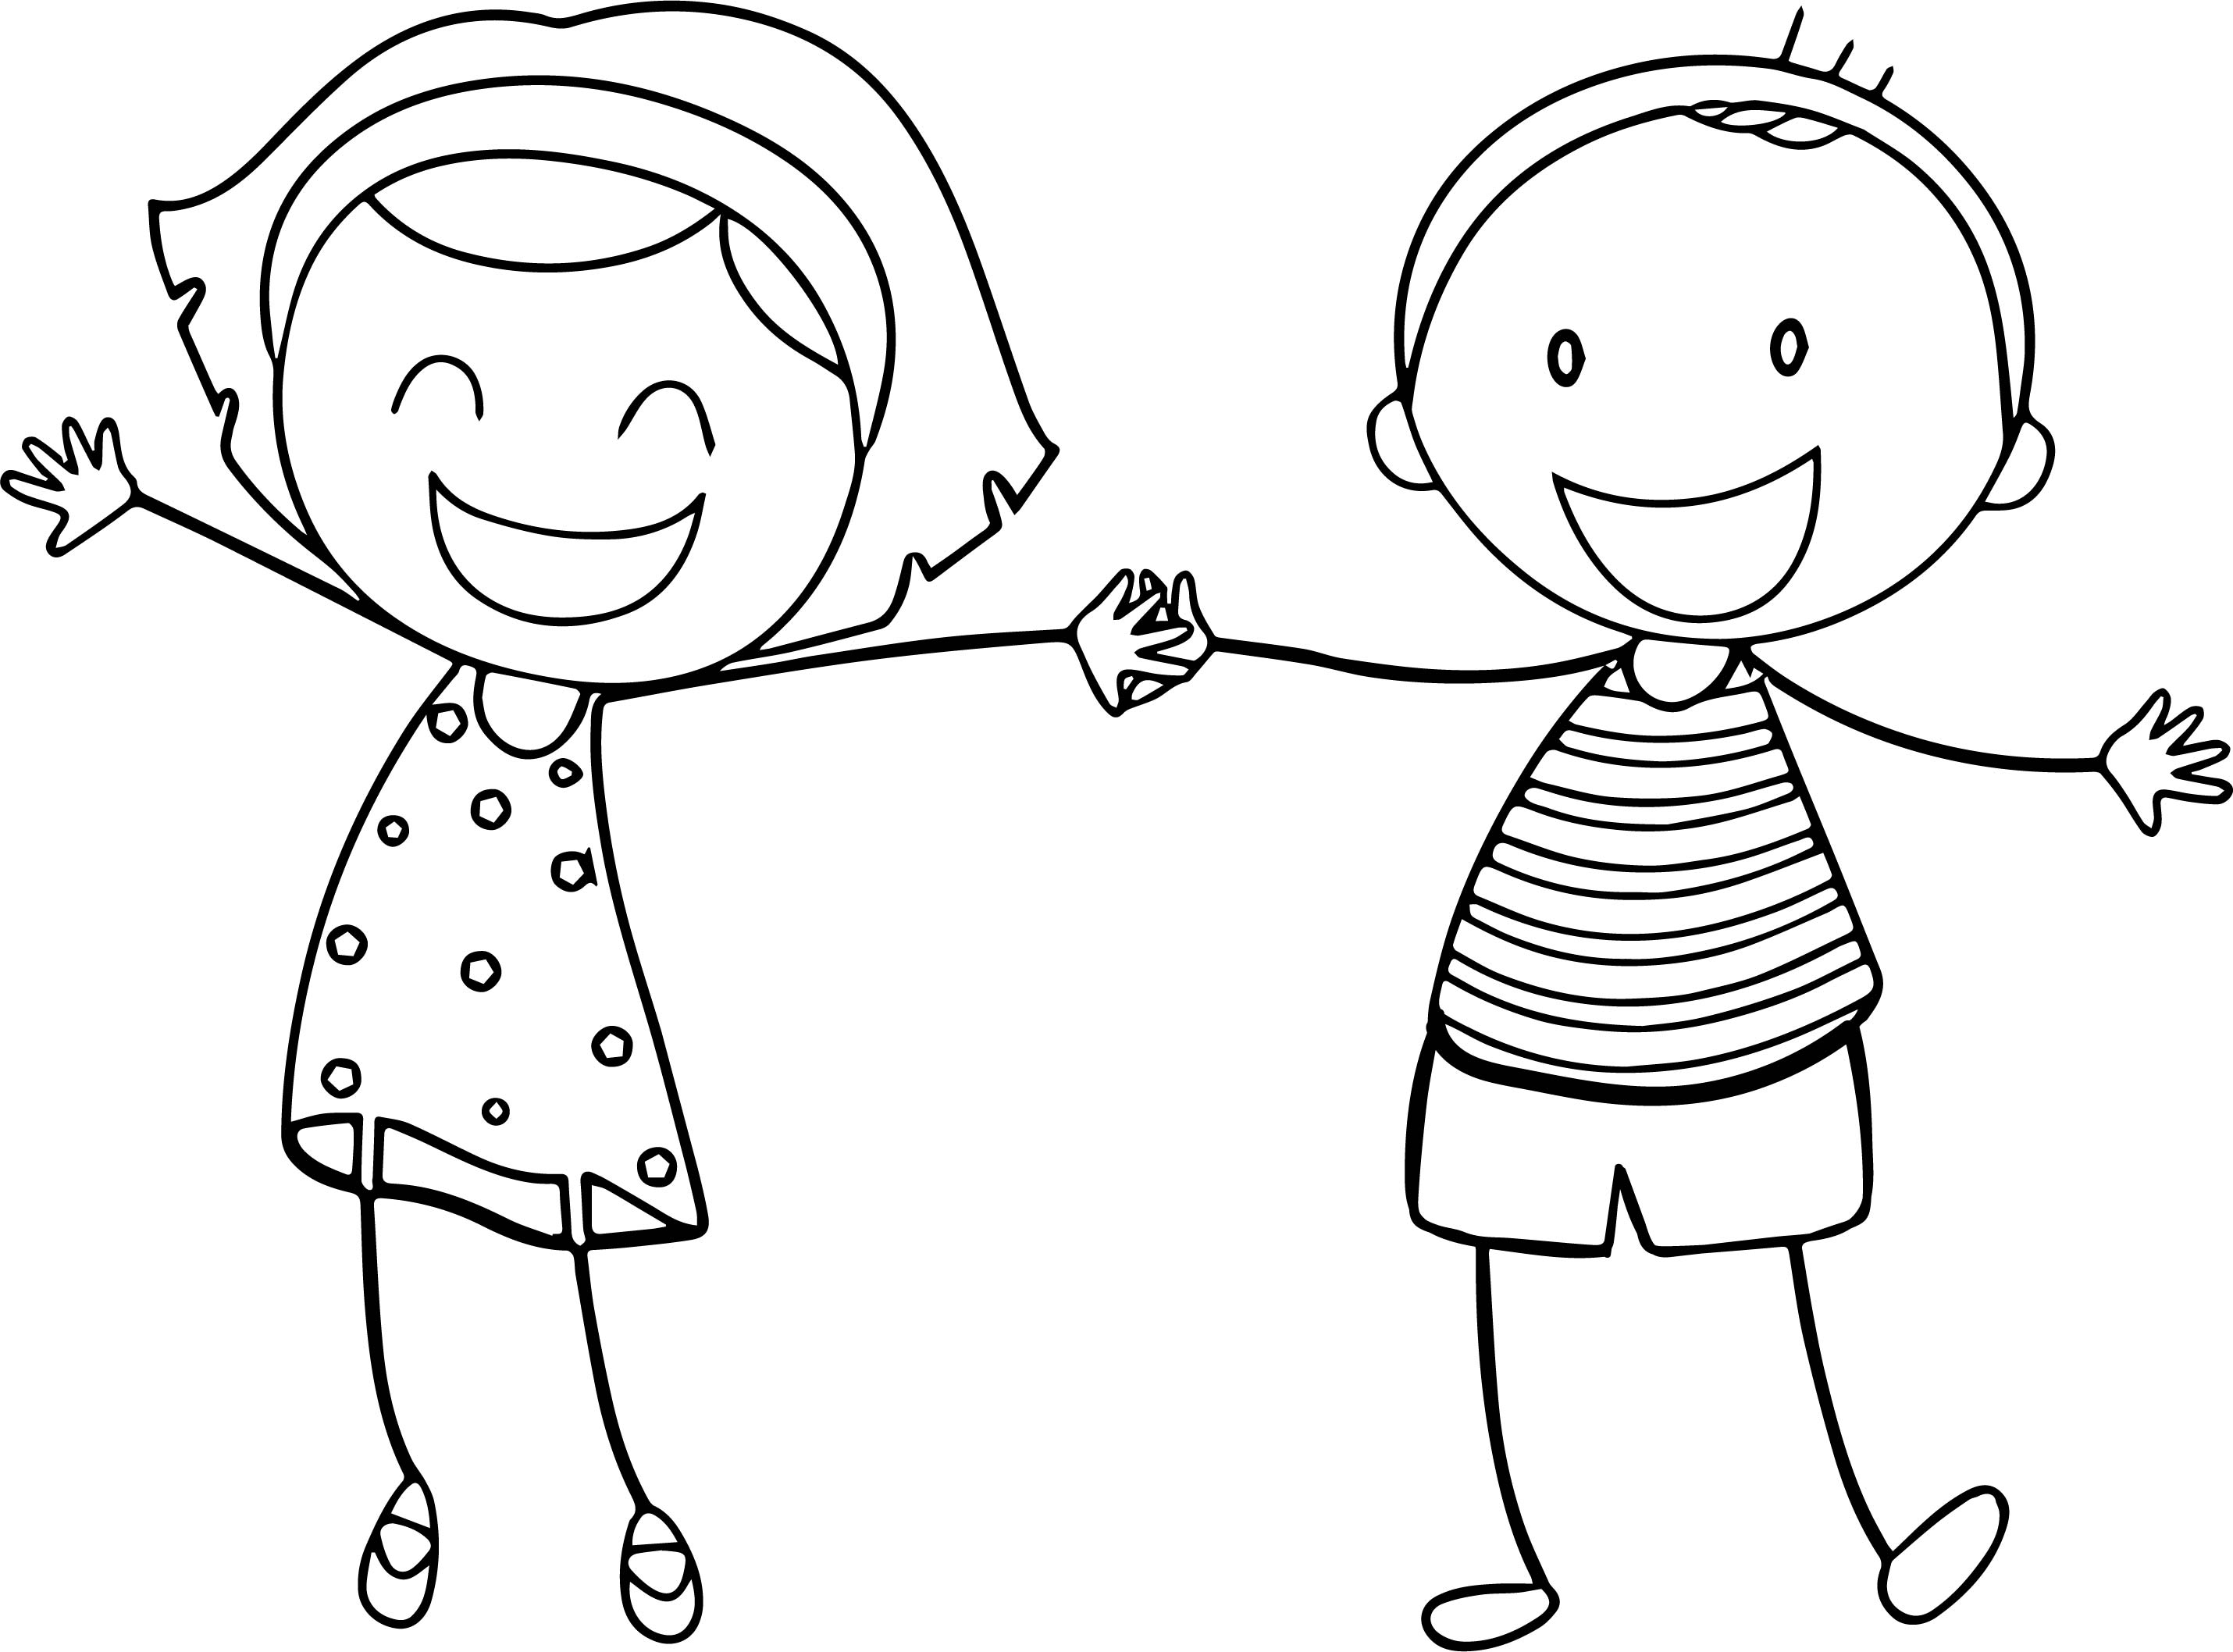 Boy and Girl Coloring Pages - Basic Funny Boy Girl Coloring Sheet Printable Free Pages